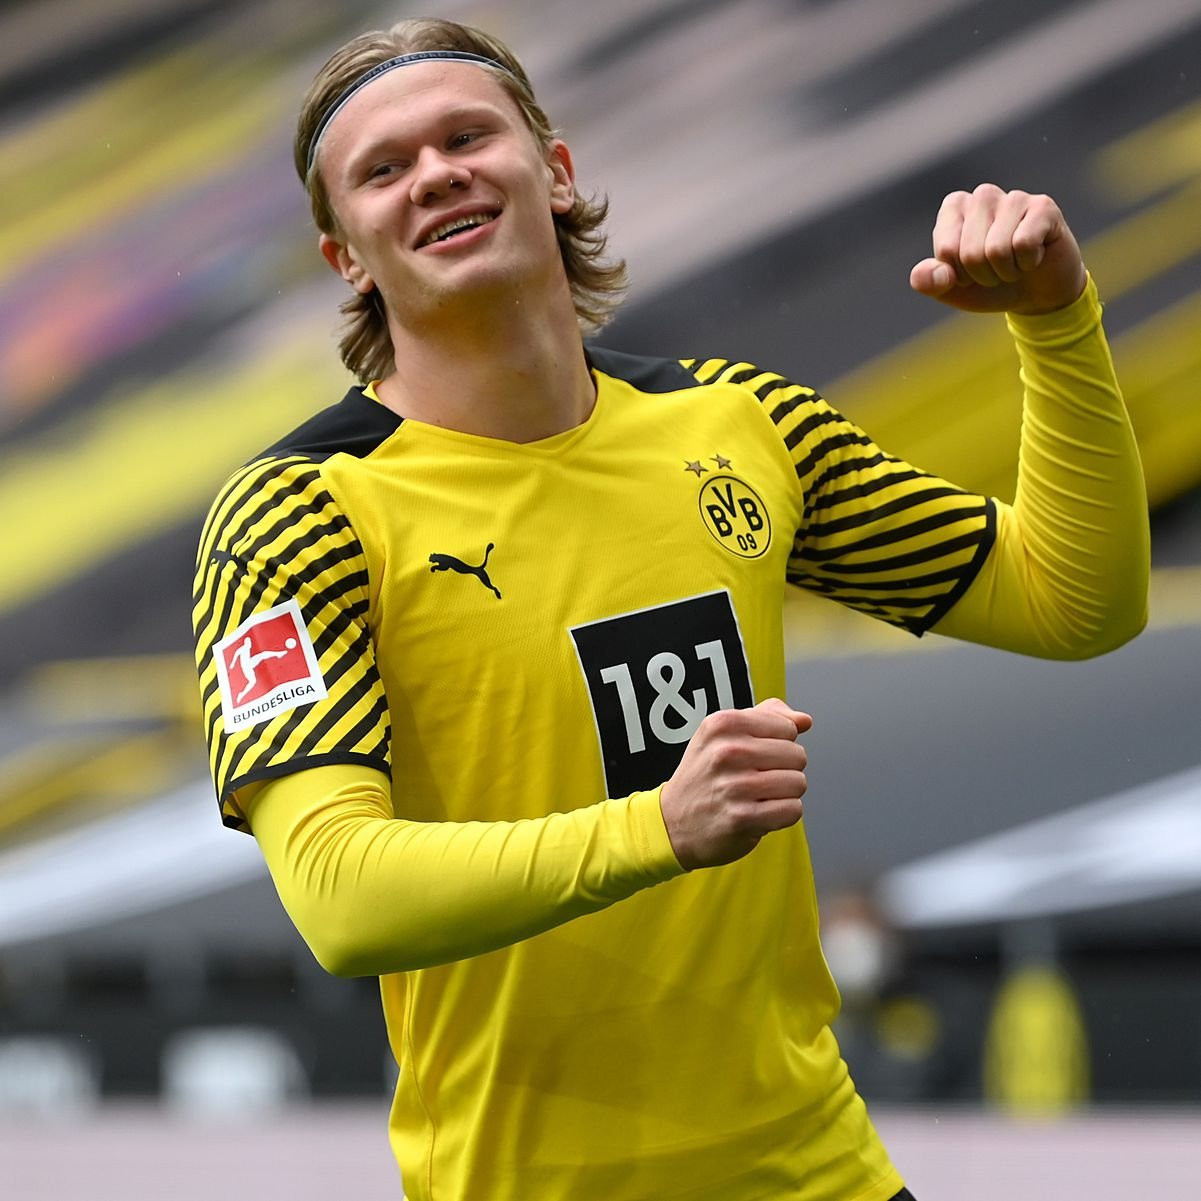 Chelsea reportedly agree personal terms with Borussia Dortmund forward Erling Haaland